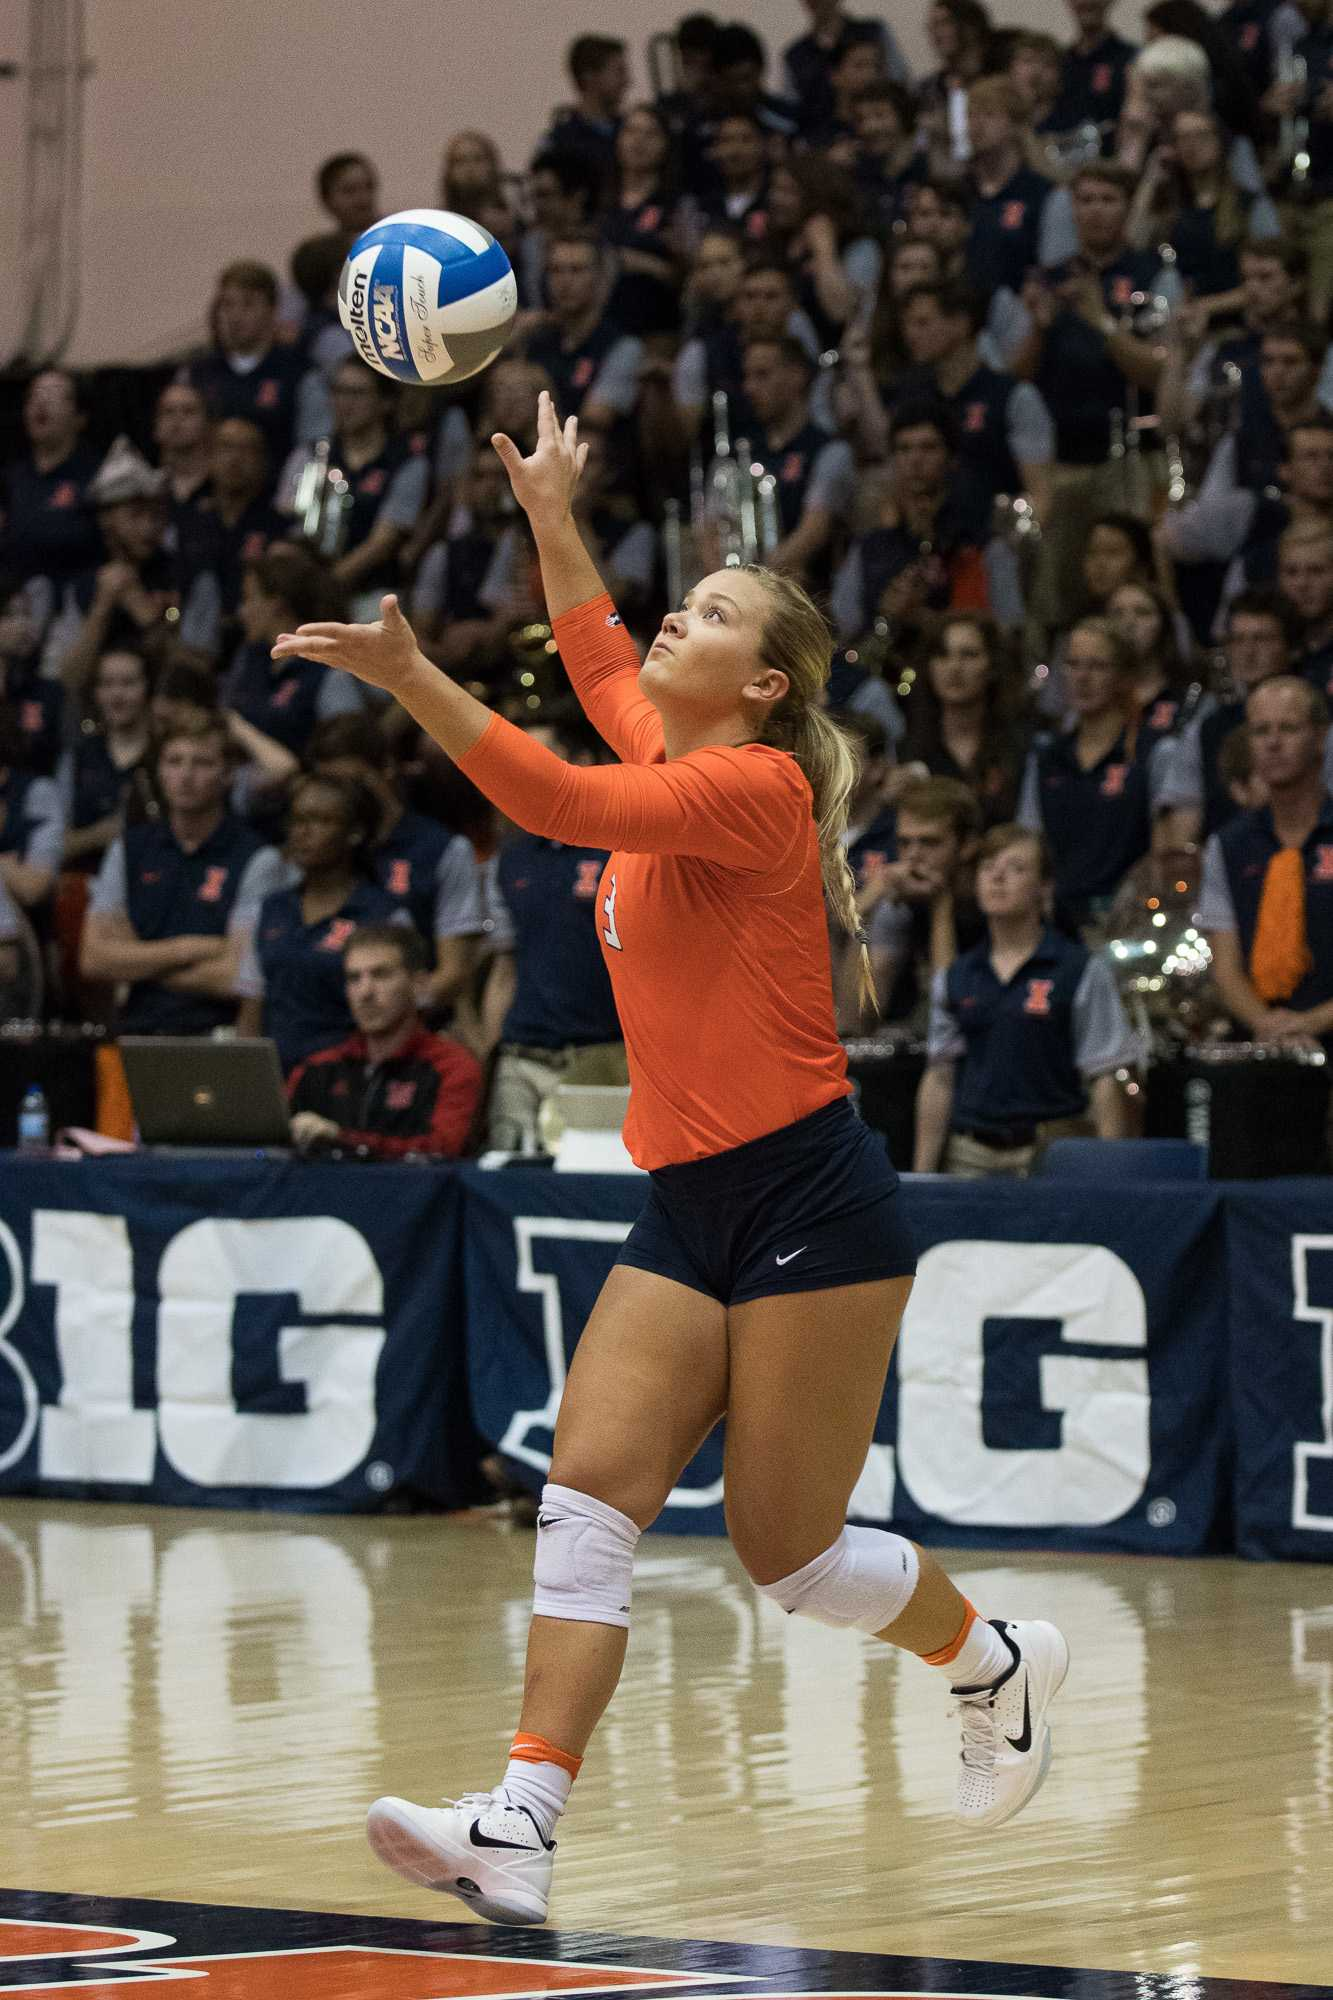 Illinois' Brandi Donnelly serves the ball during the game against Nebraska on Sept. 16.  The Illini lost 0-3.